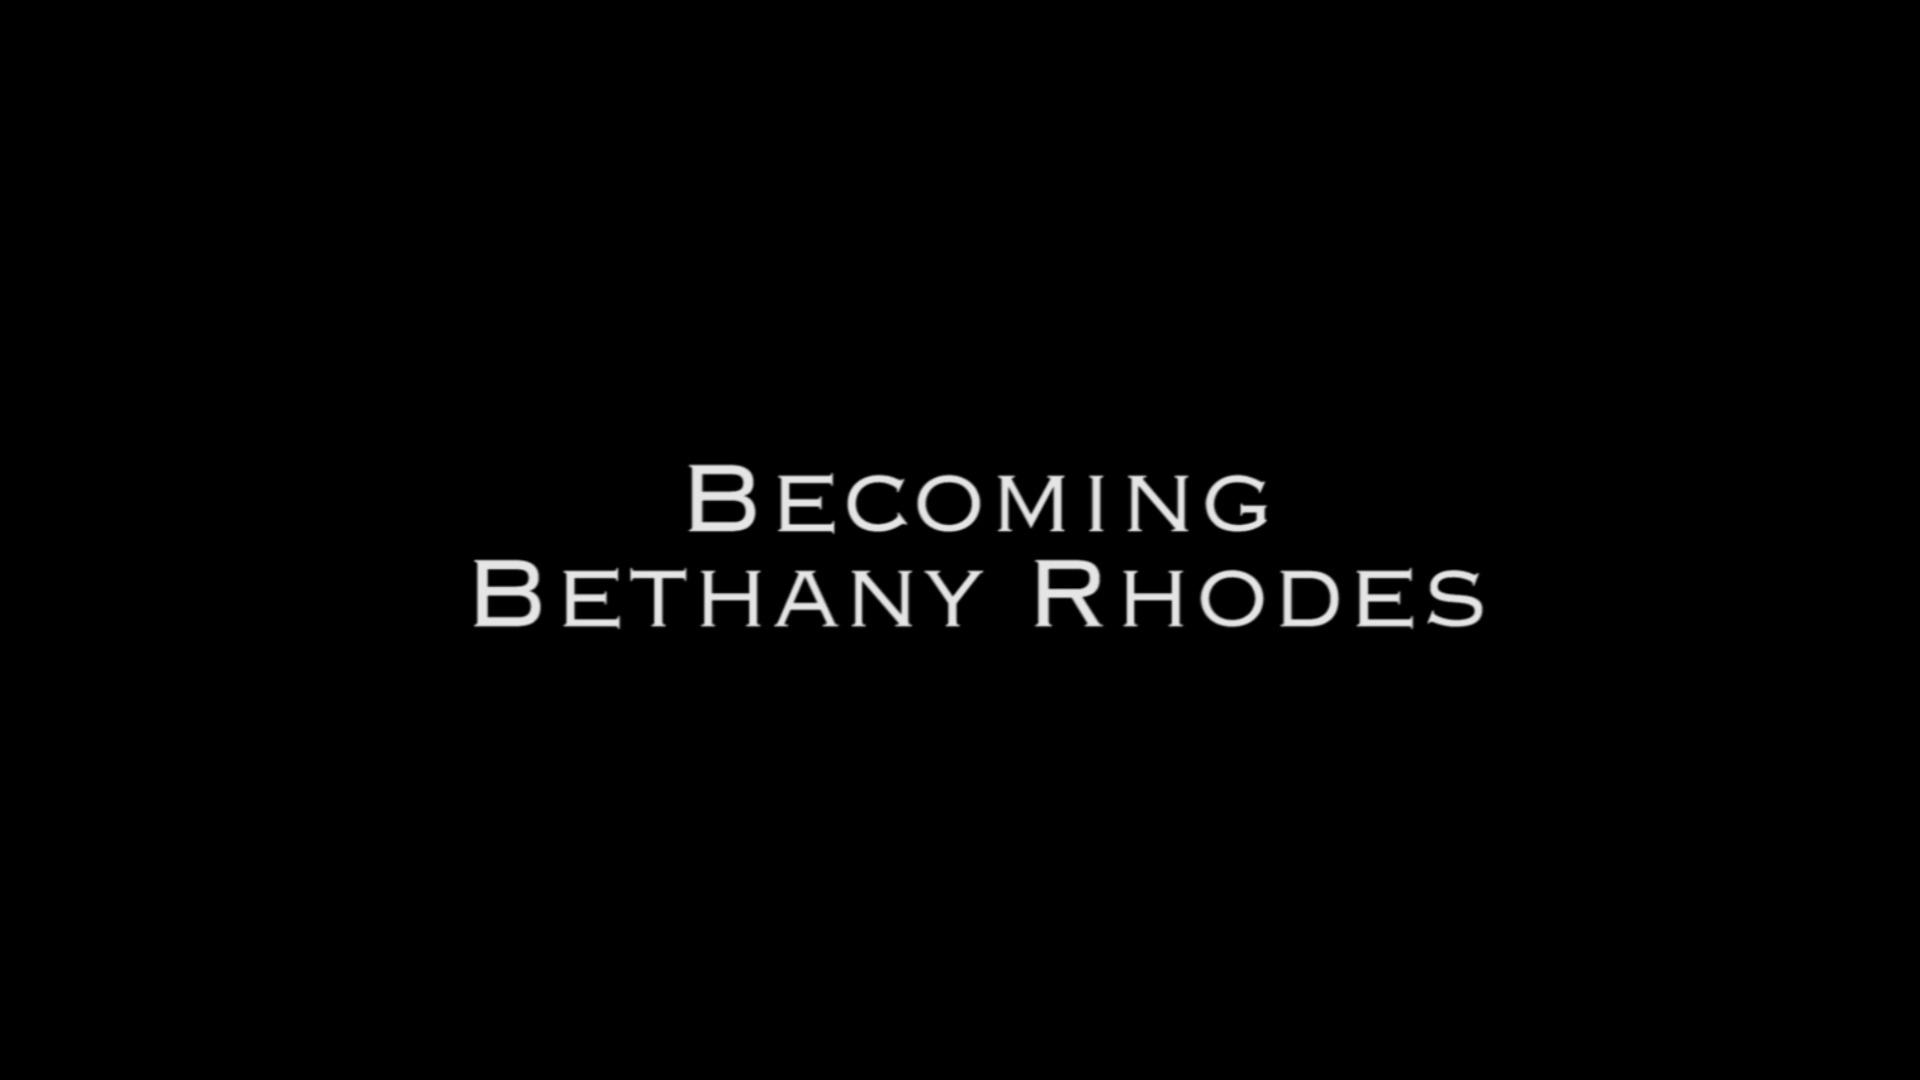 Becoming Bethany Rhodes